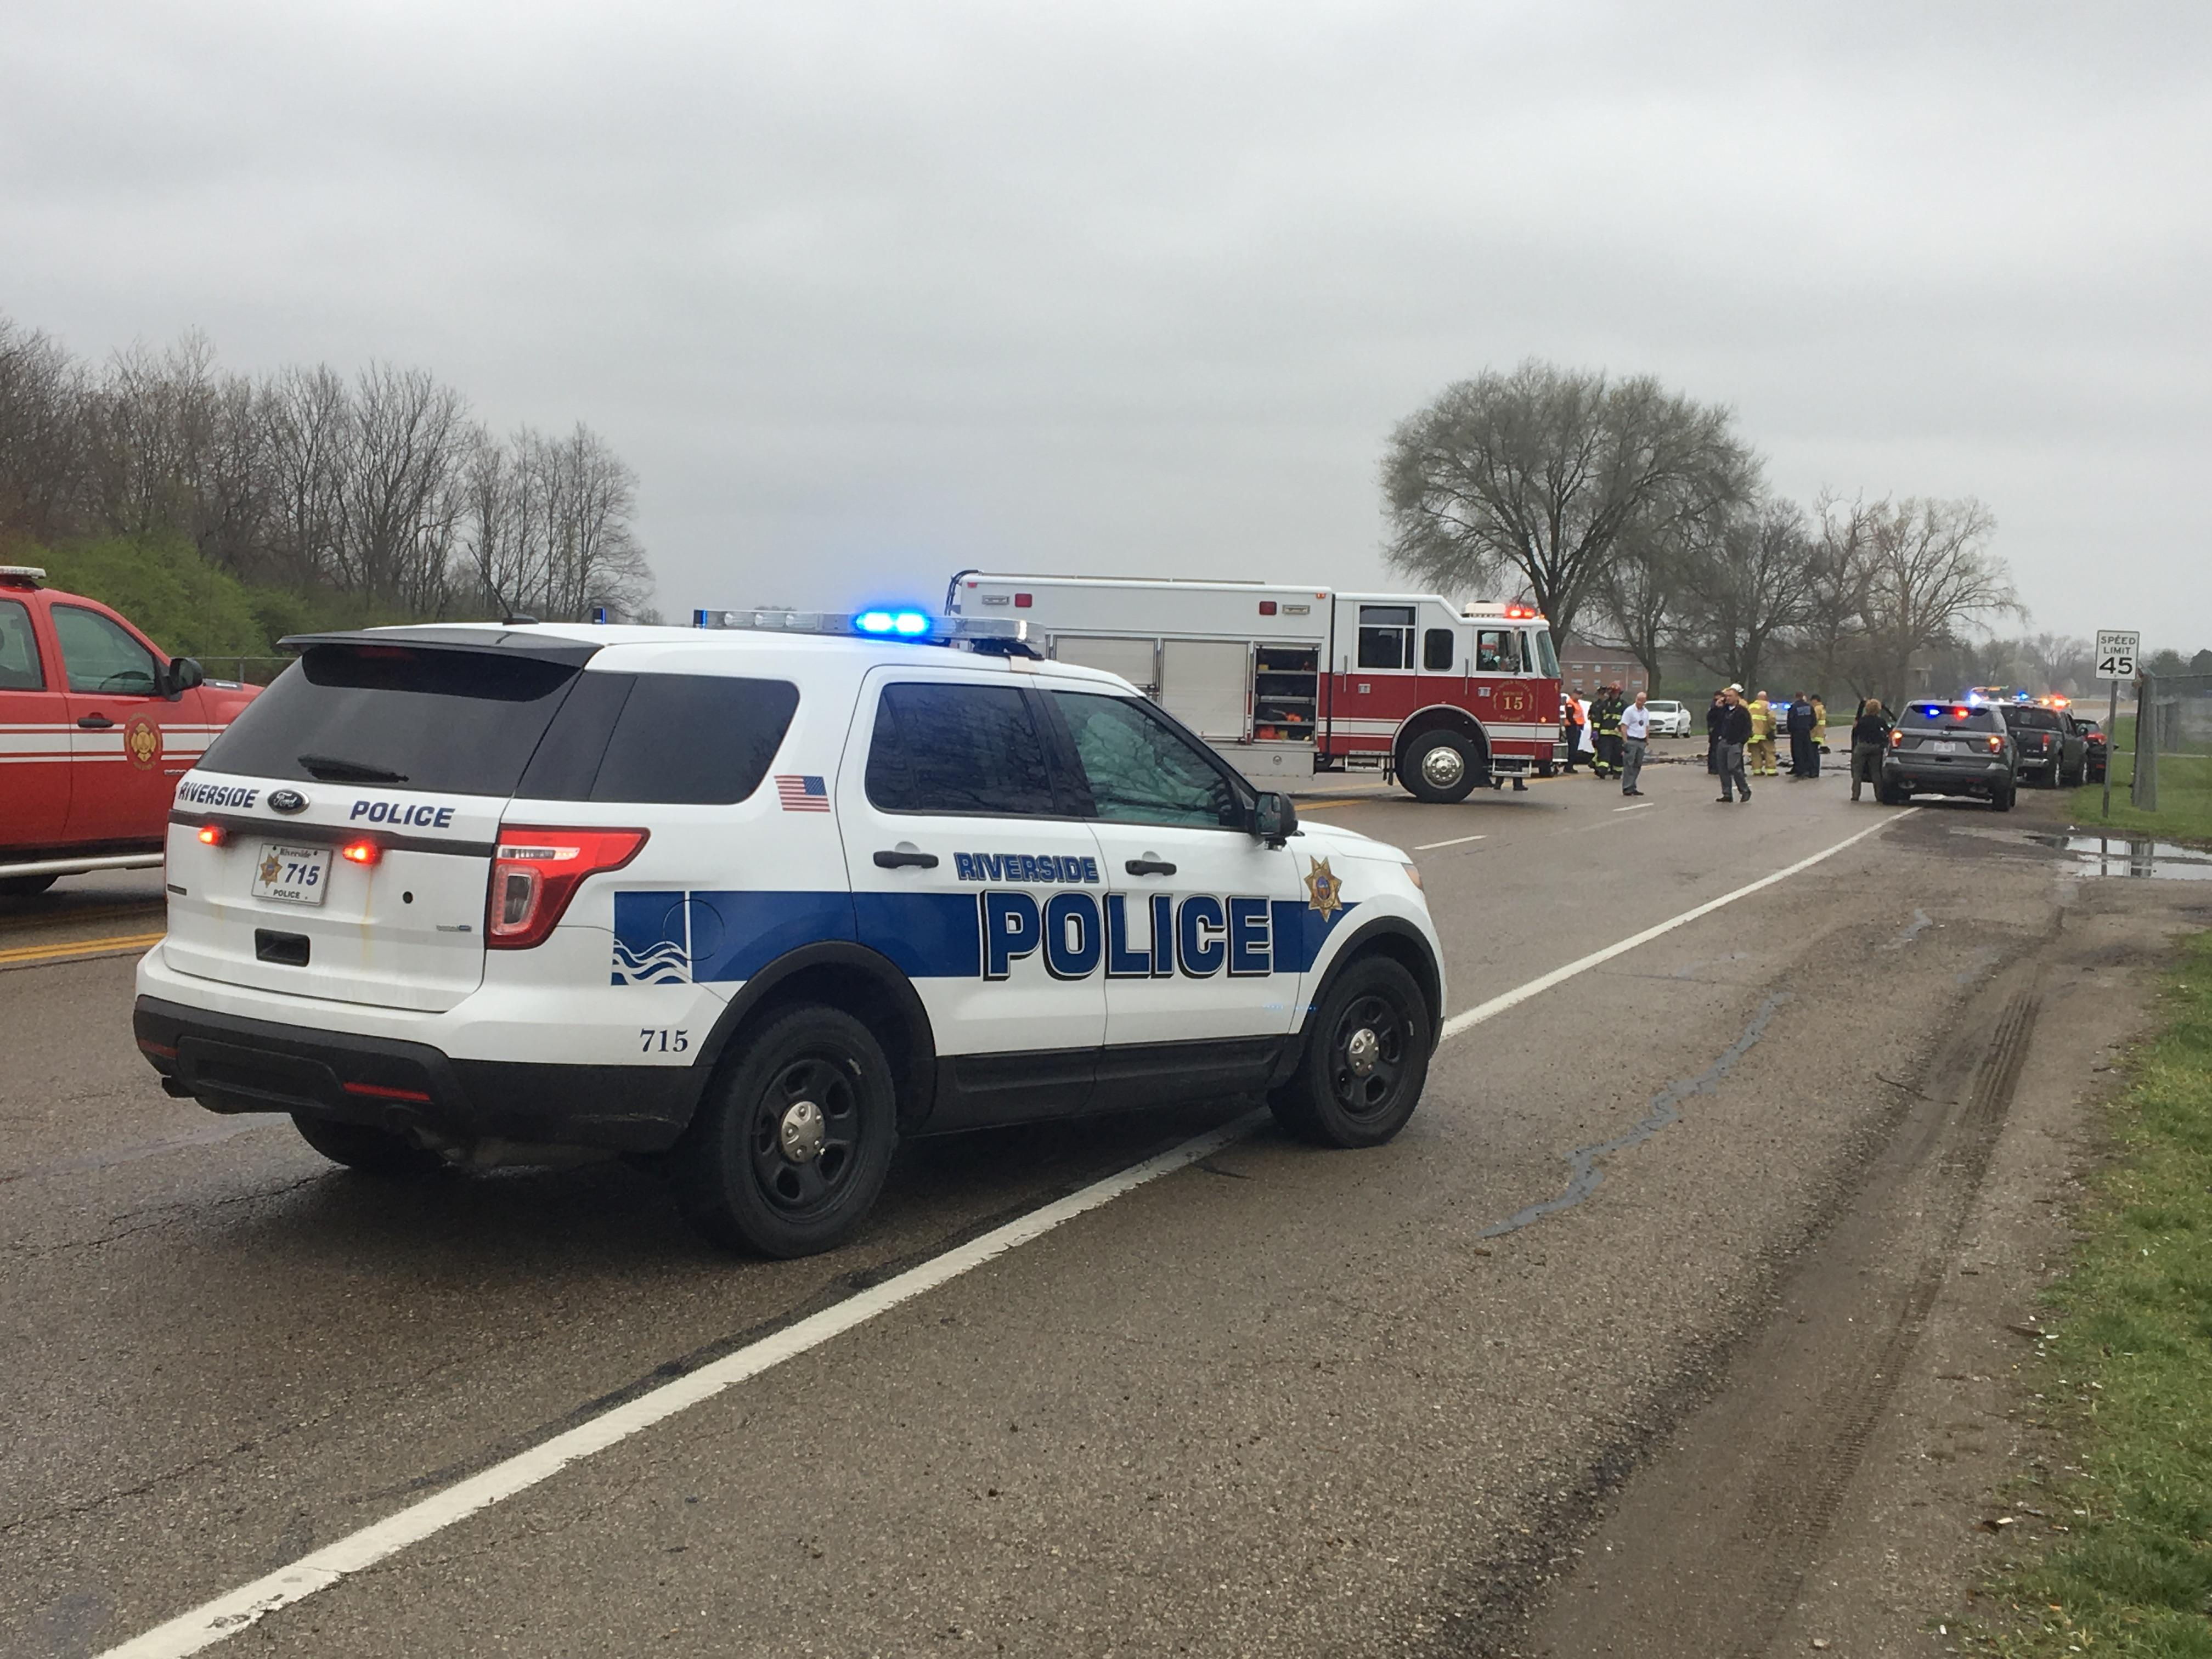 Coroner reportedly called to scene of multi-vehicle crash in Riverside (WKEF/WRGT)